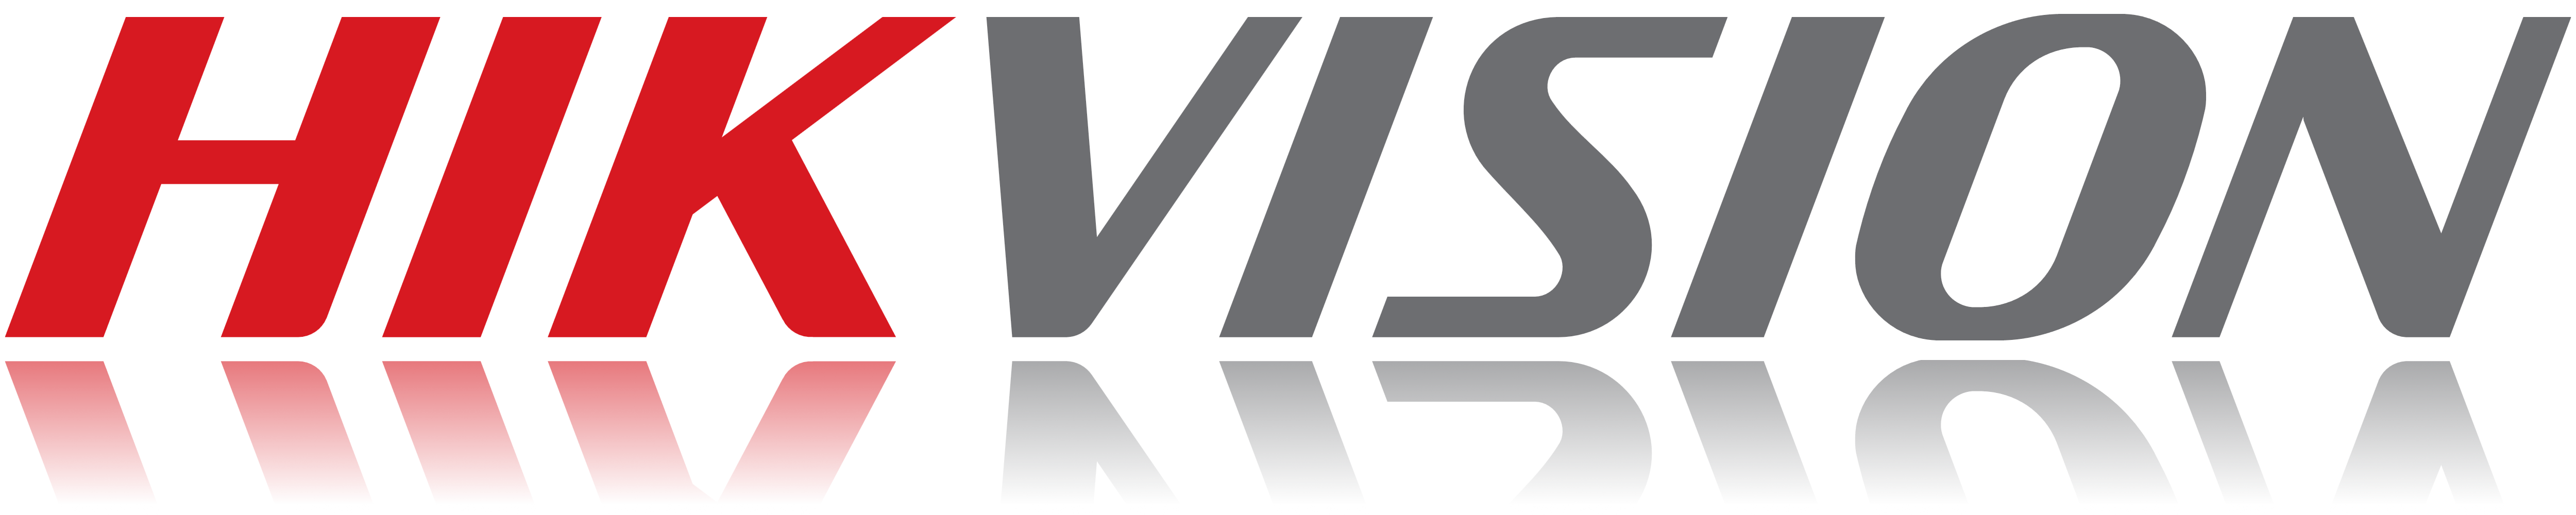 http://logos-download.com/wp-content/uploads/2016/06/Hikvision_logo_shadow.png